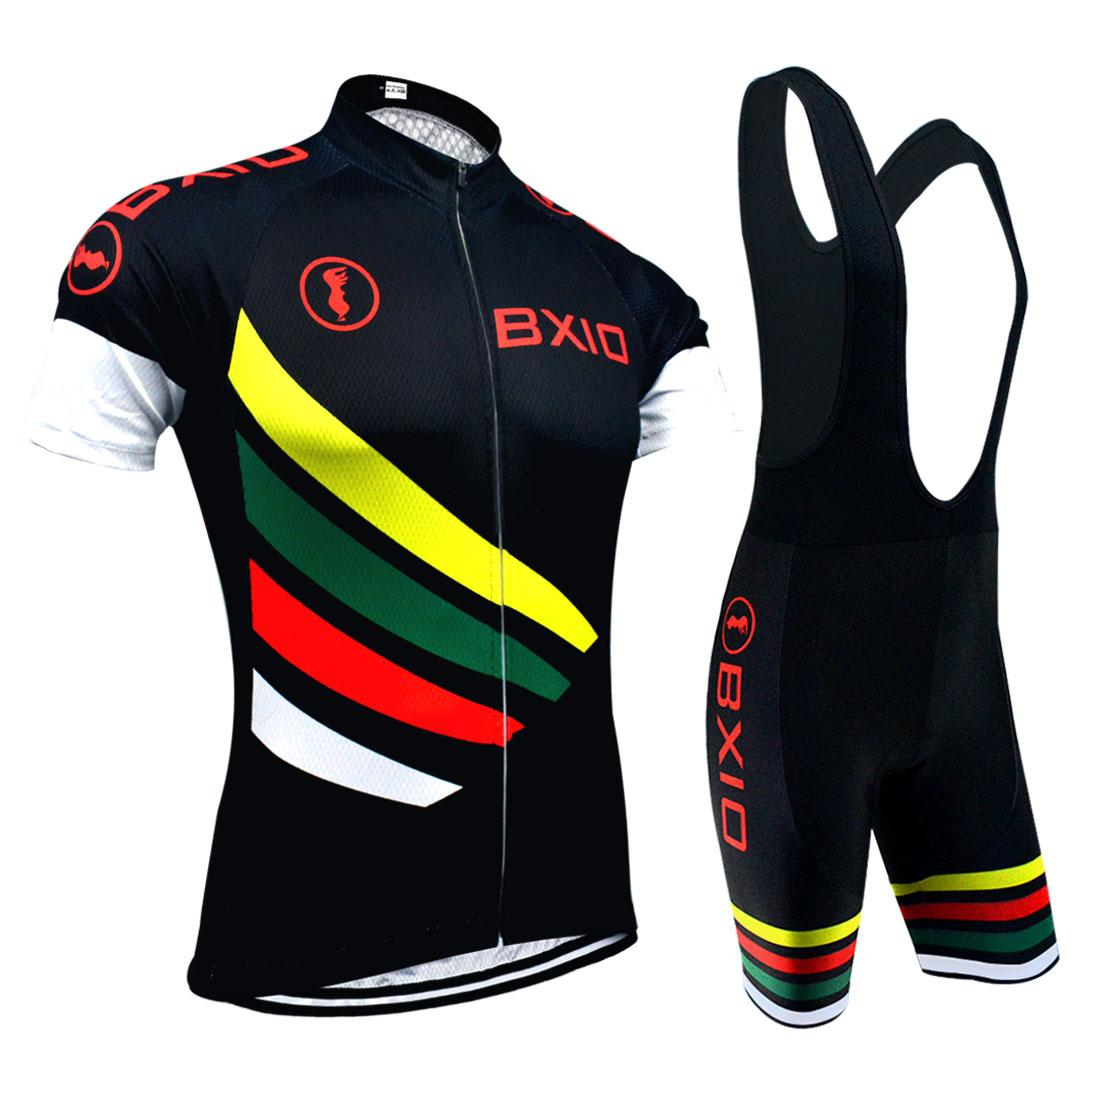 BXIO MTB Cycling Jersey Sets Black Series Bikes Clothes Hot Summer  Recommend Cycle Clothing Can Be Choose Bibs Or No Bibs Set BX 108 Mountain Bike  Gear ... f0e57755b